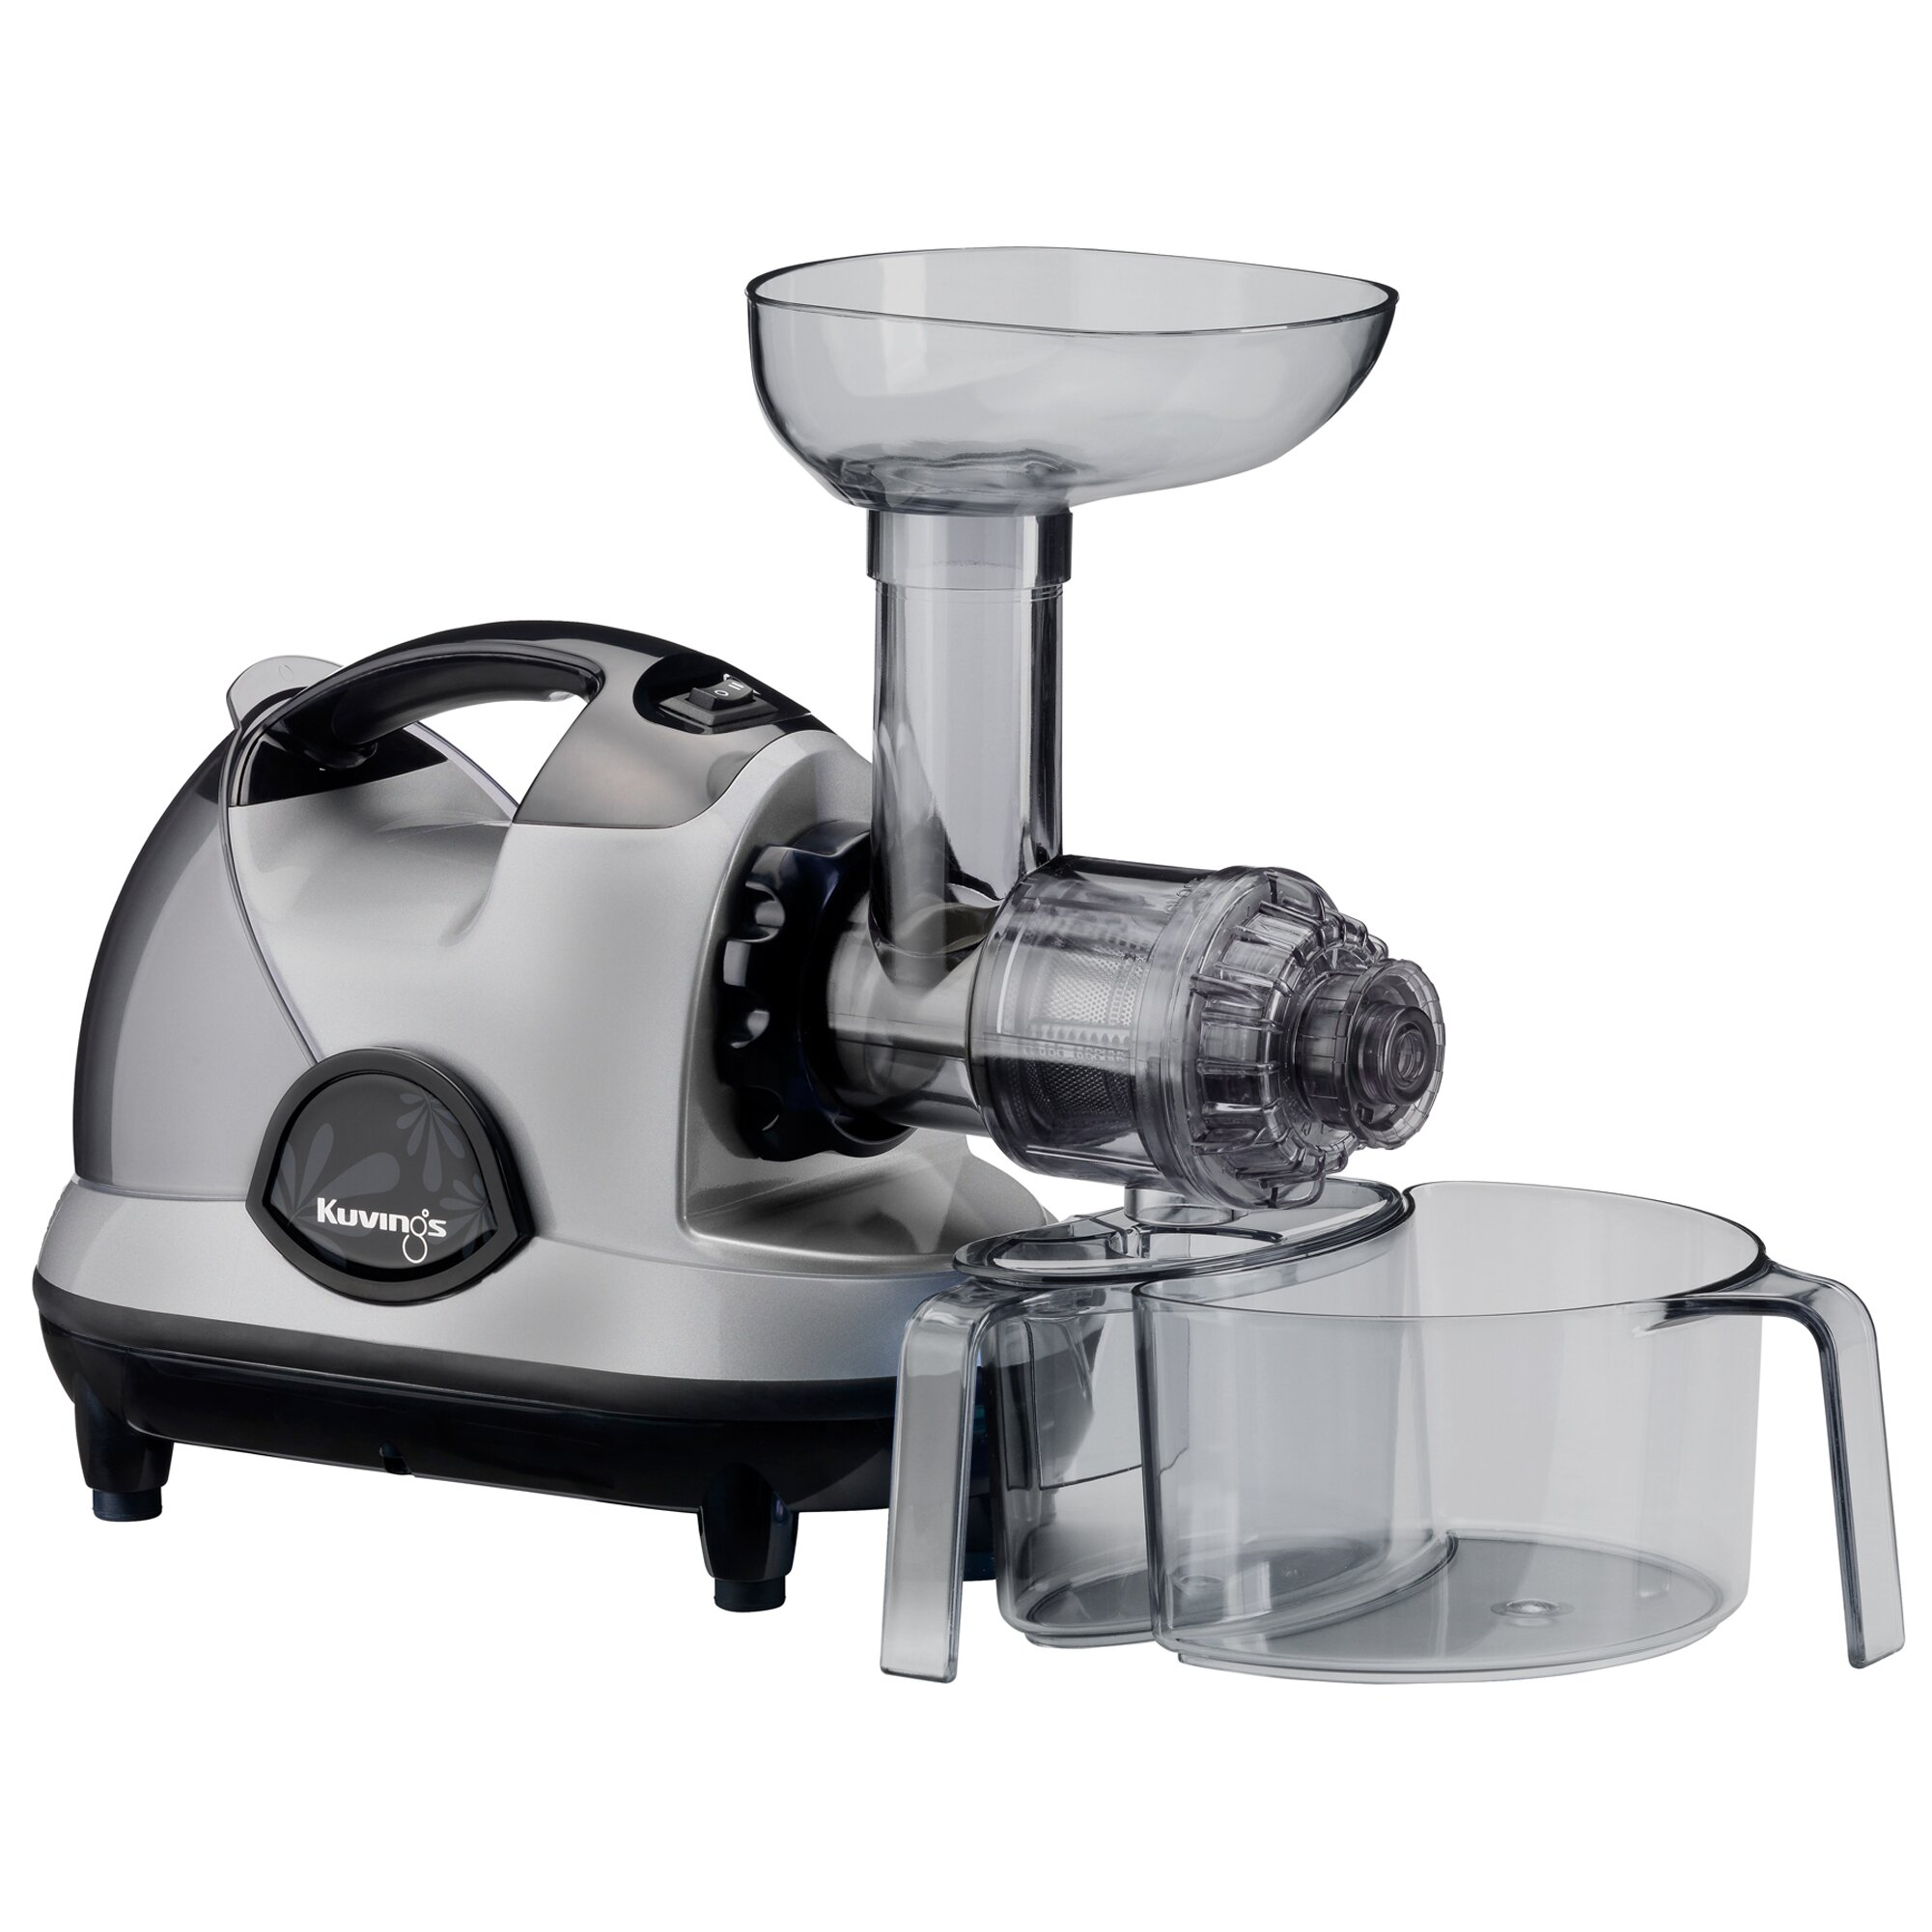 Wilfa Sj 150a Slow Juicer Review : KUvINGS Multi-Purpose Slow Juicer & Reviews Wayfair